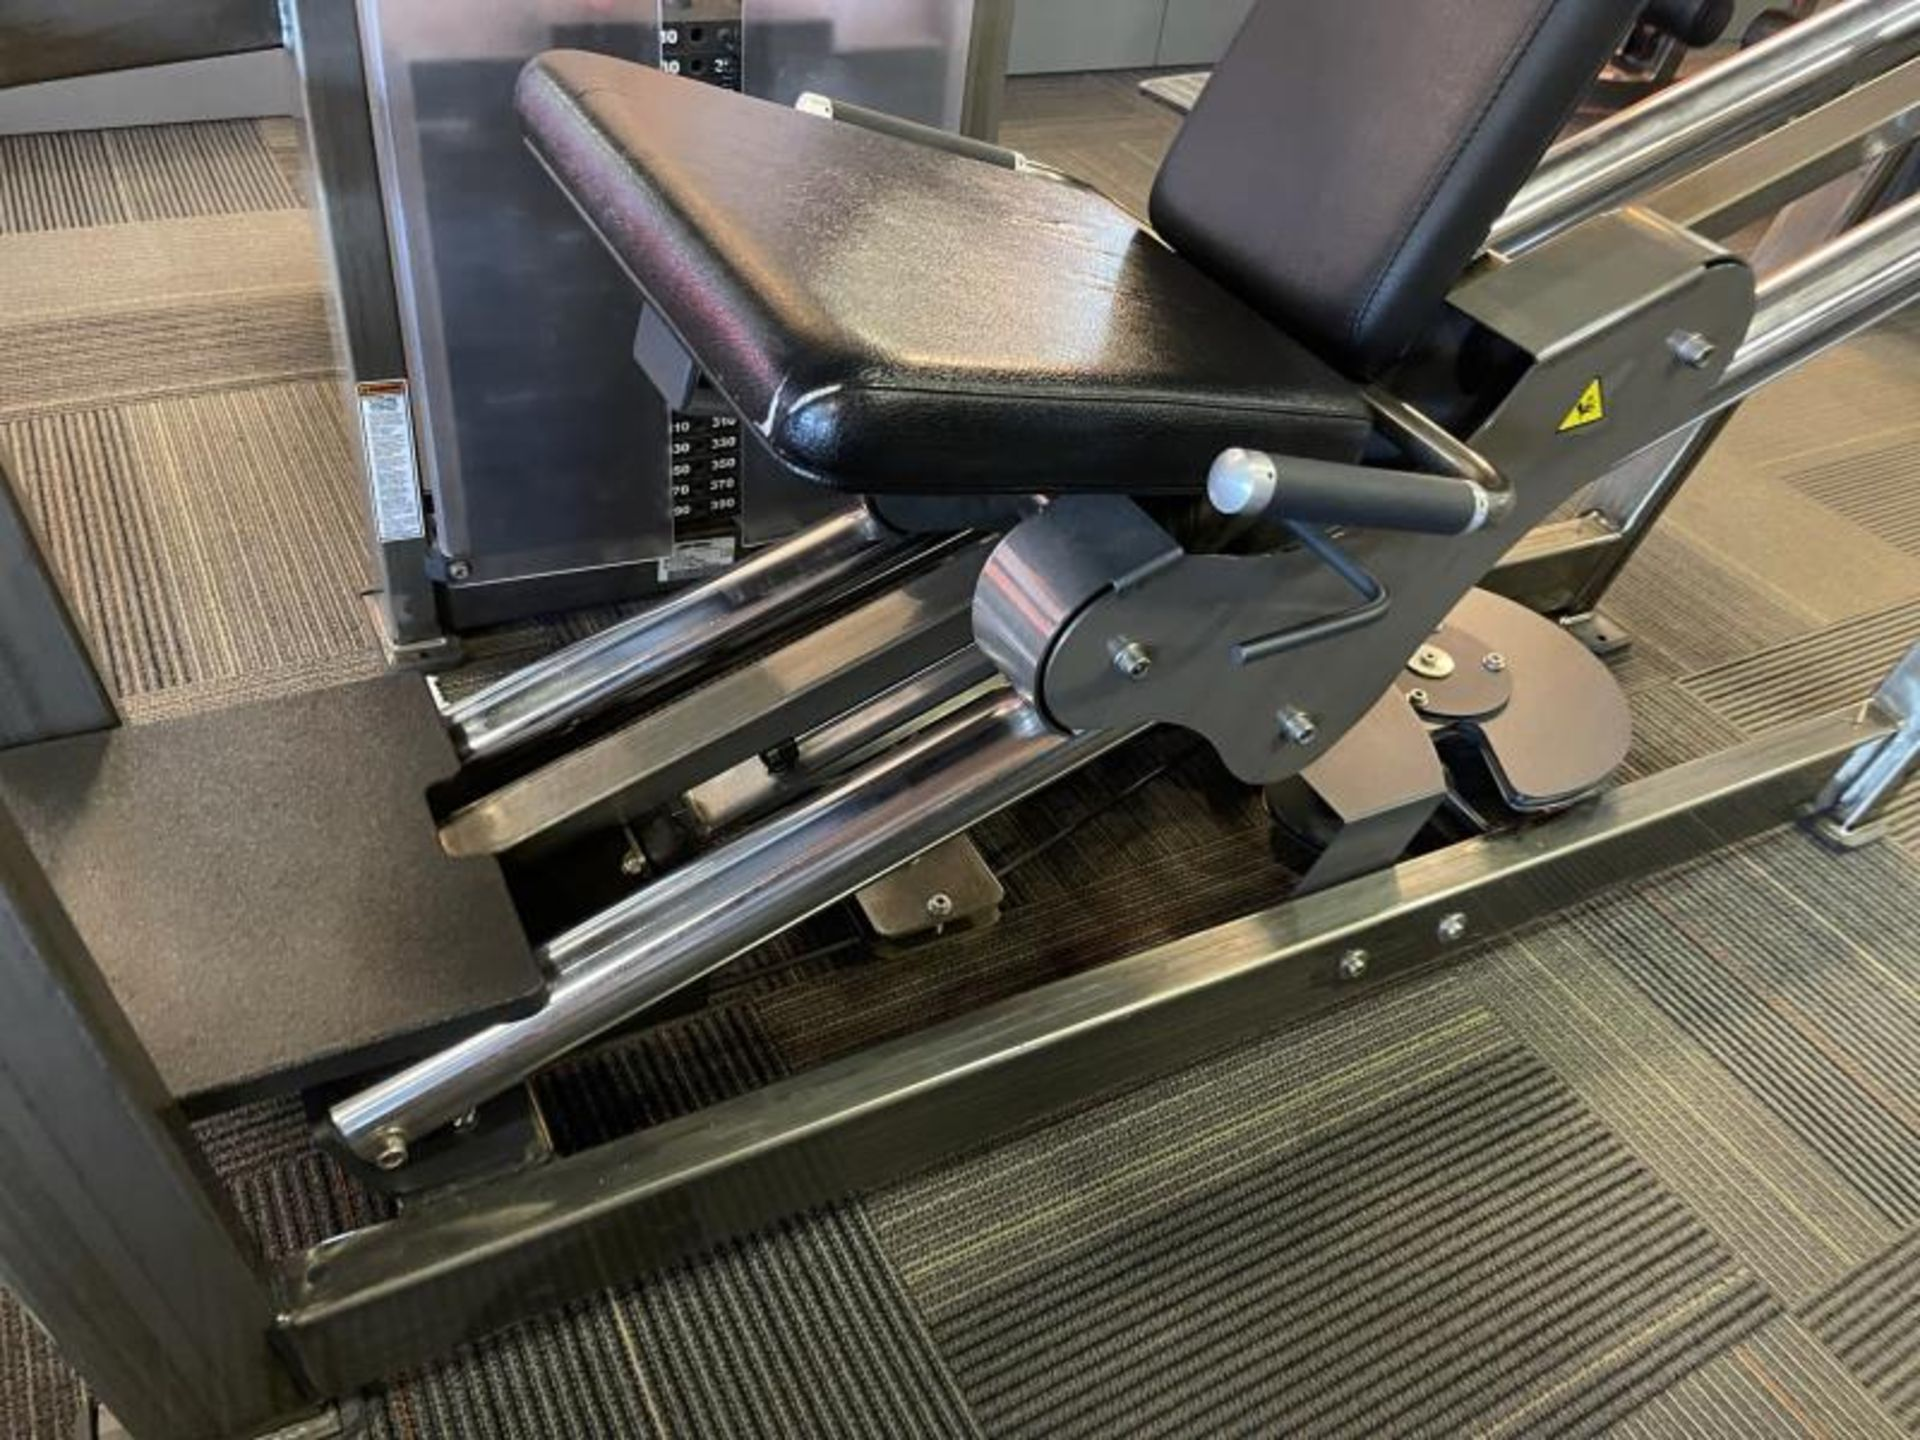 Lifer Fitness Seated Leg Press M:PSSLPE - Image 2 of 6